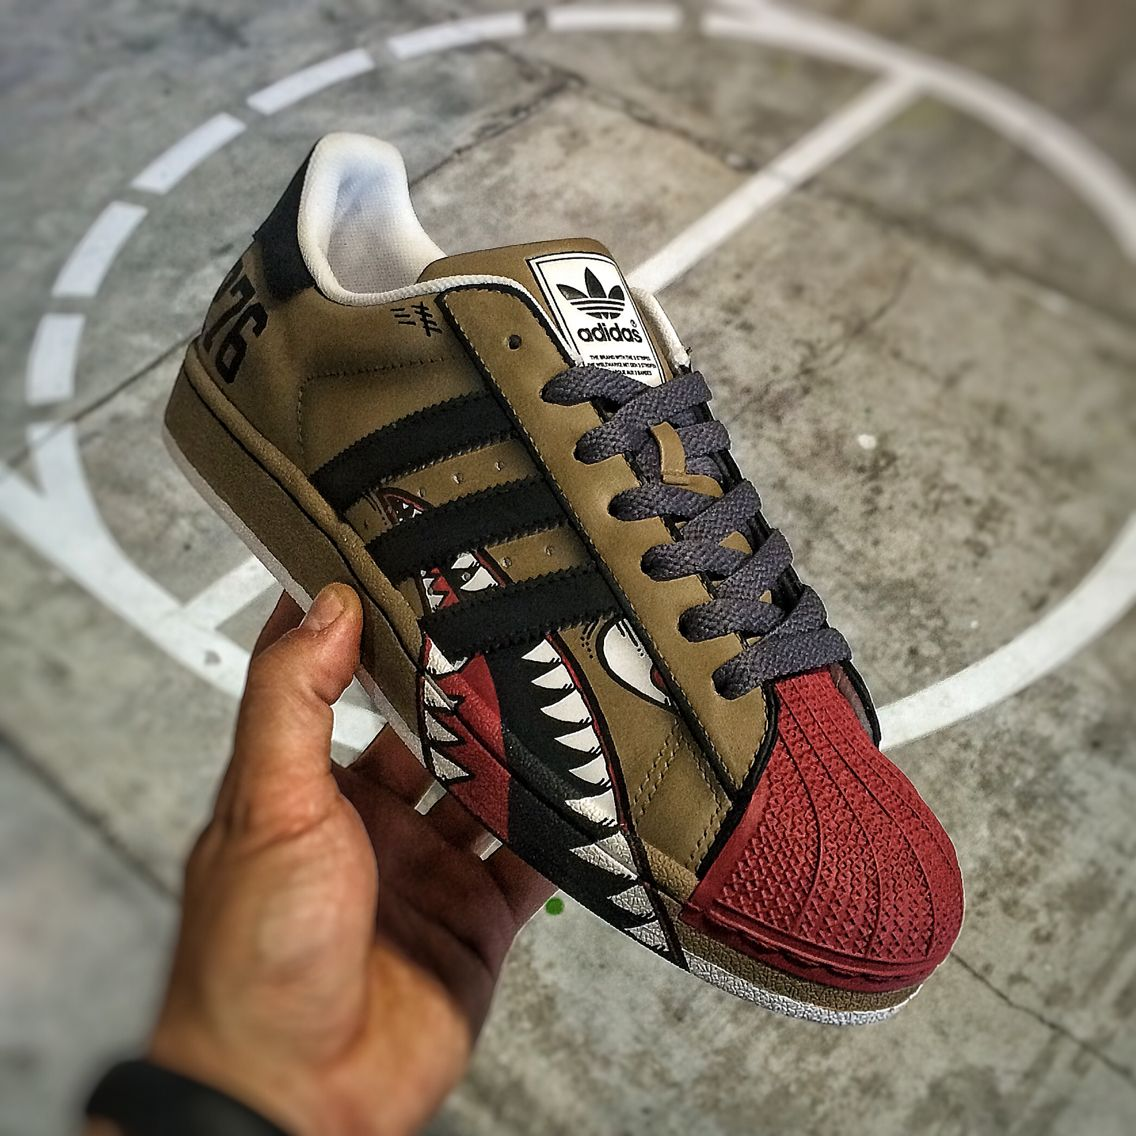 05b981f6 Custom Adidas Superstar II WarBird Dee || Follow FILET. for more street  wear #